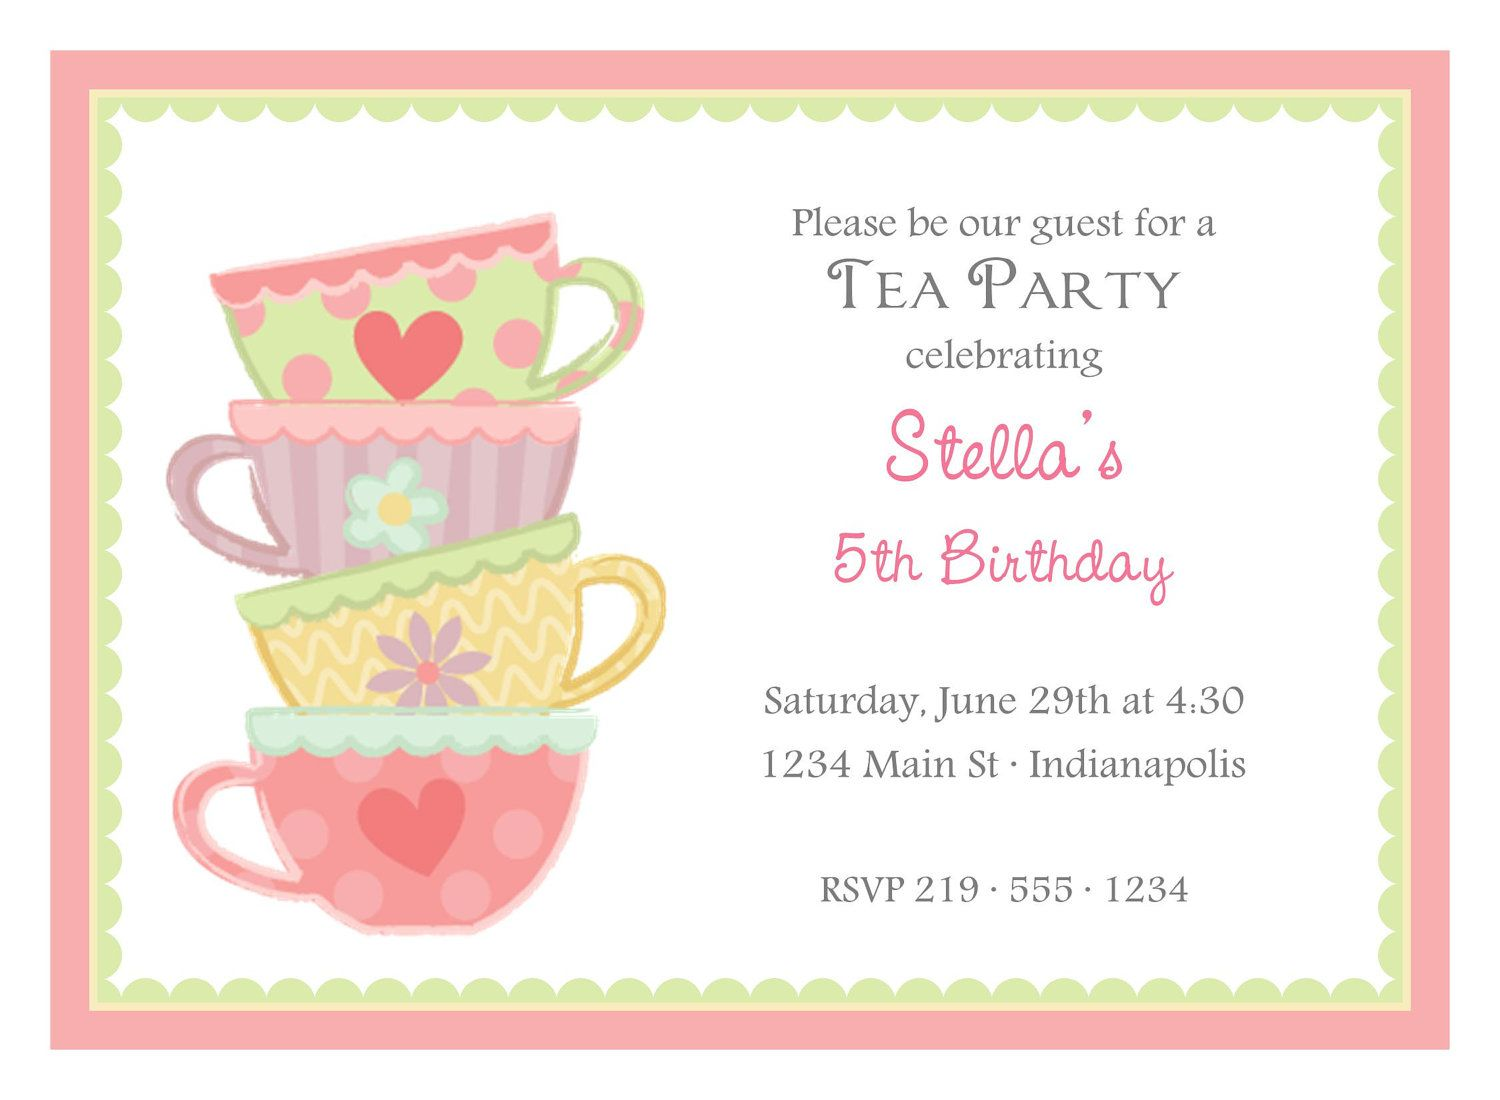 Kids Tea Party Invitation Wording – Invitation for Tea Party